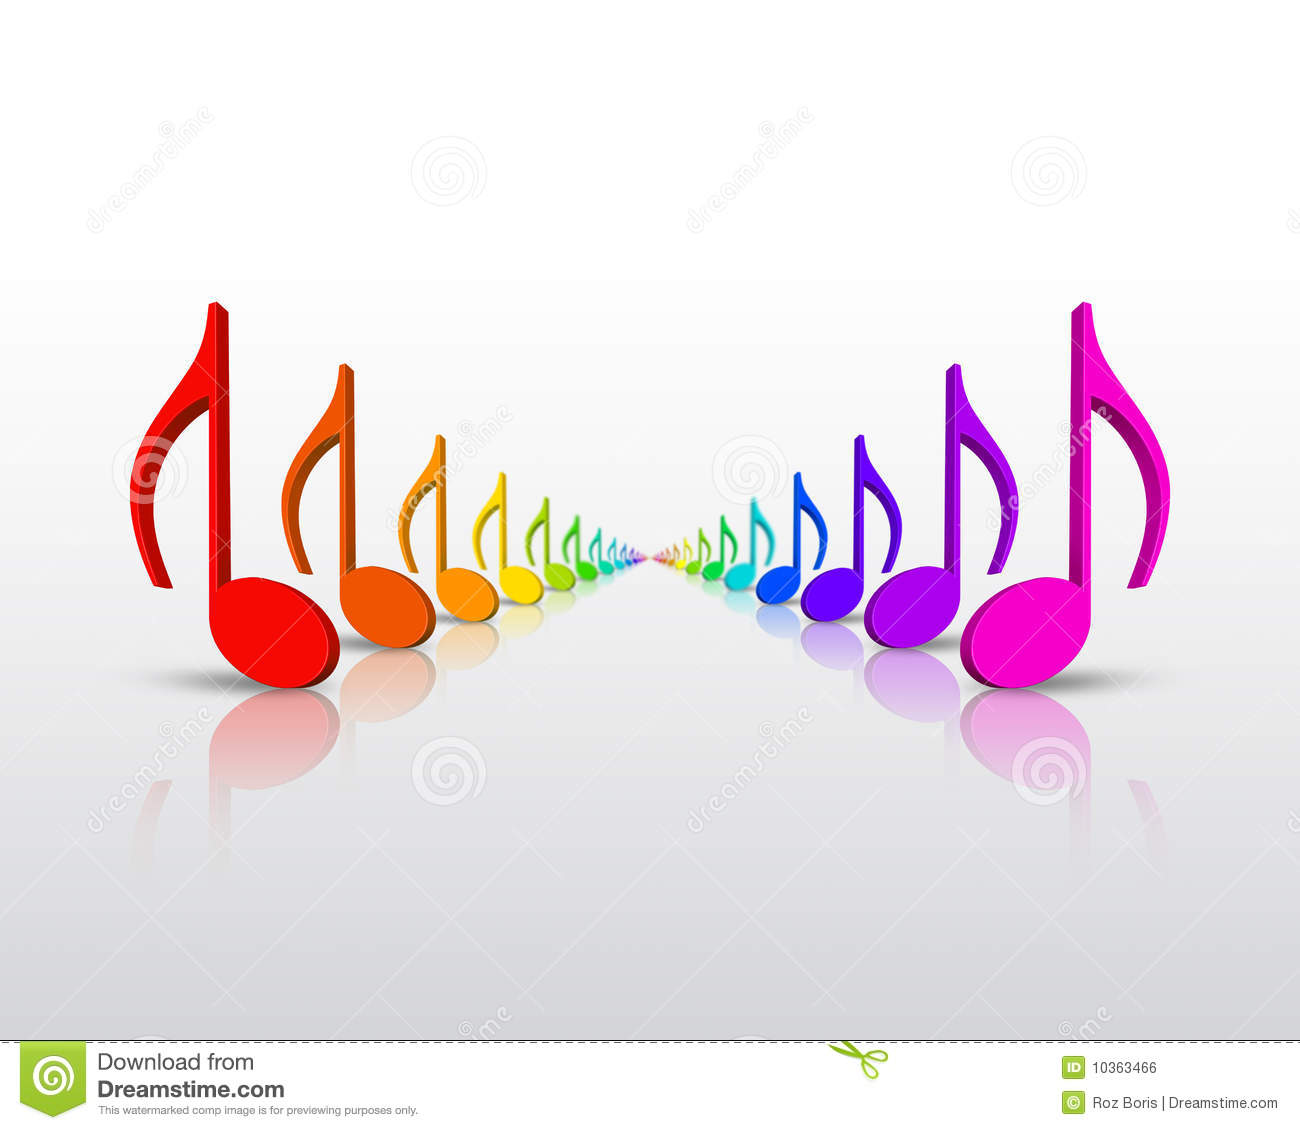 Top Wallpaper Music Rainbow - colorful-music-notes-wallpaper-rainbow-music-notes-10363466  You Should Have_21821.jpg